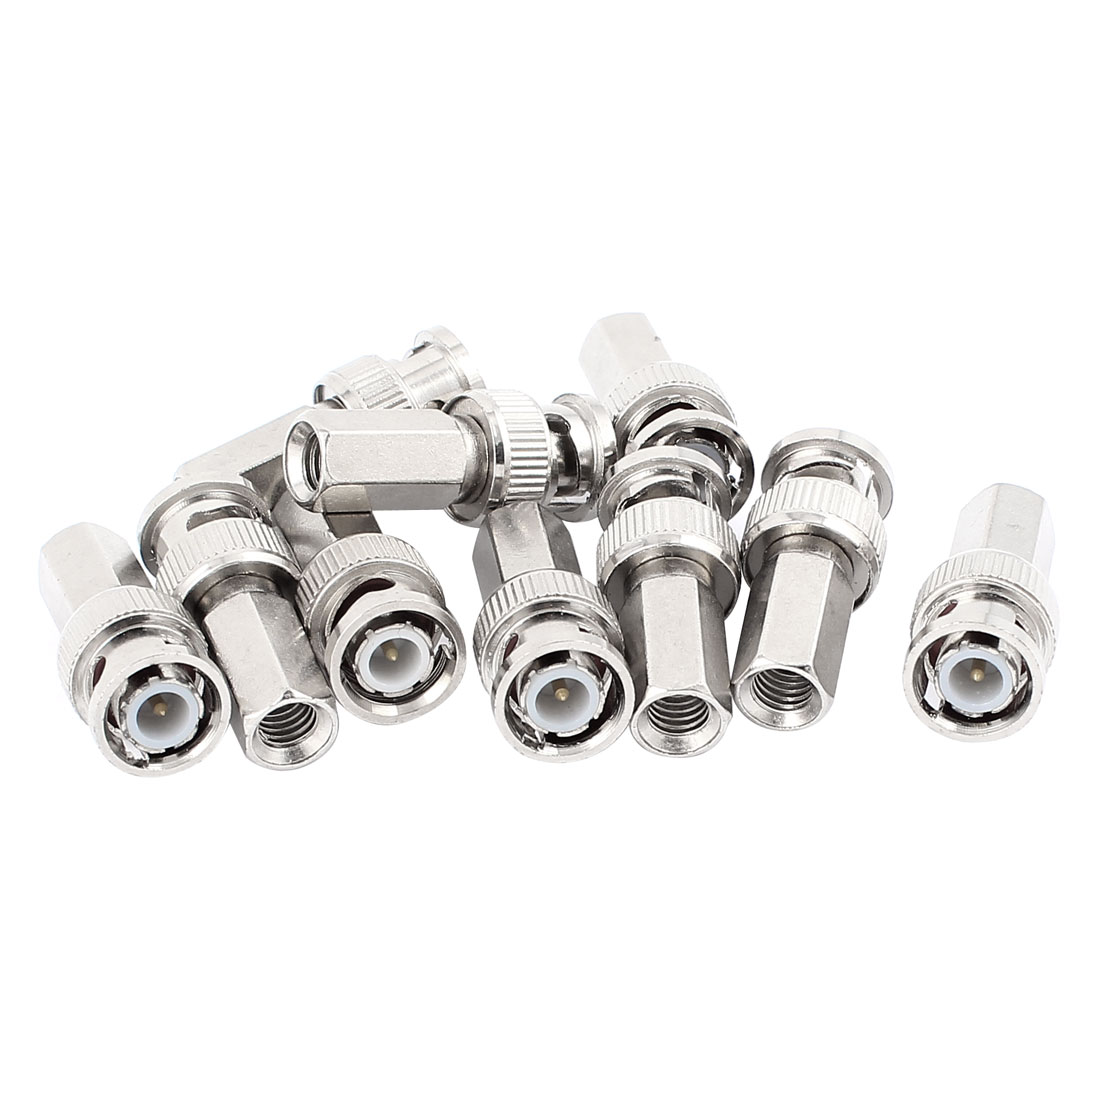 10pcs BNC Male Jack to Female Connector Adapter for CCTV Camera